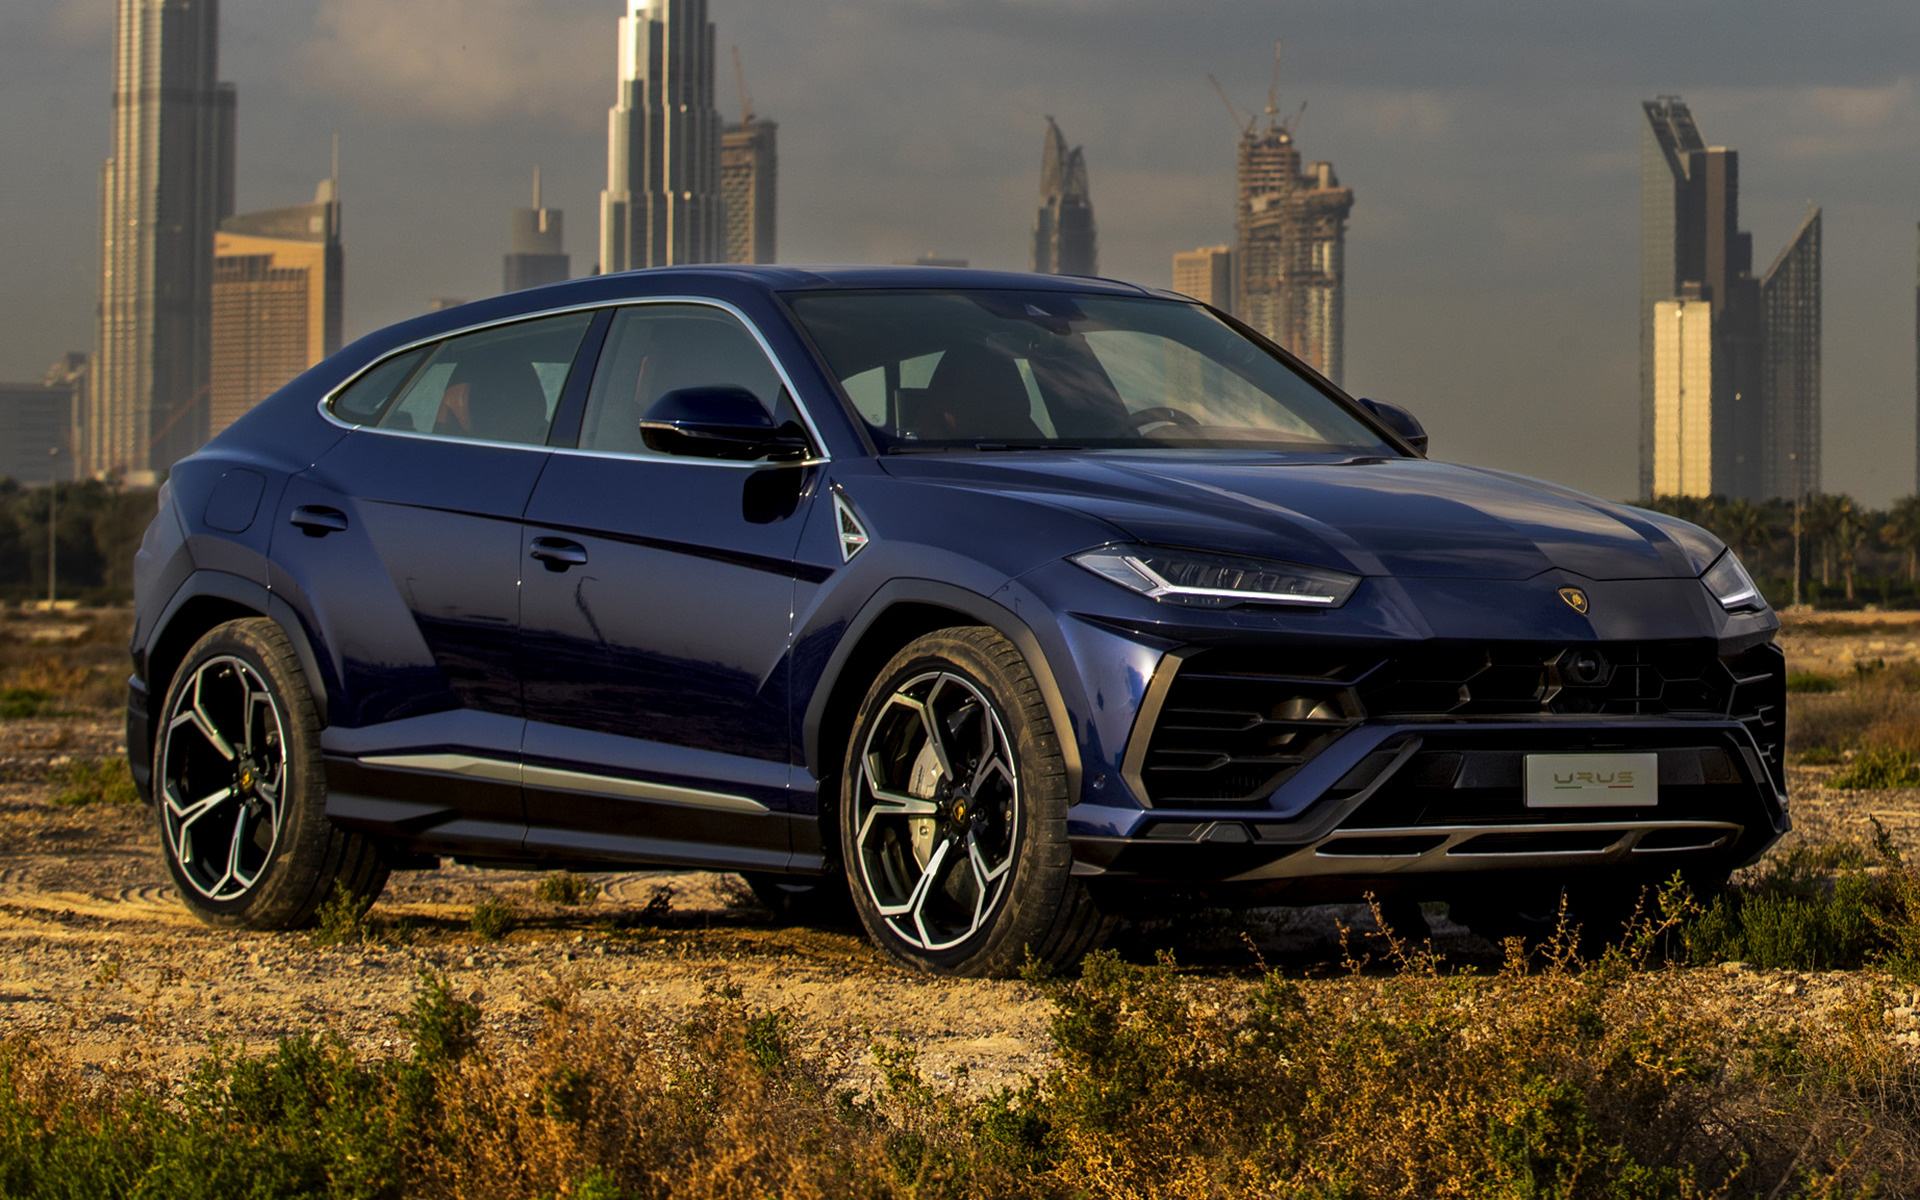 lamborghini urus off-road package (2018) wallpapers and hd images